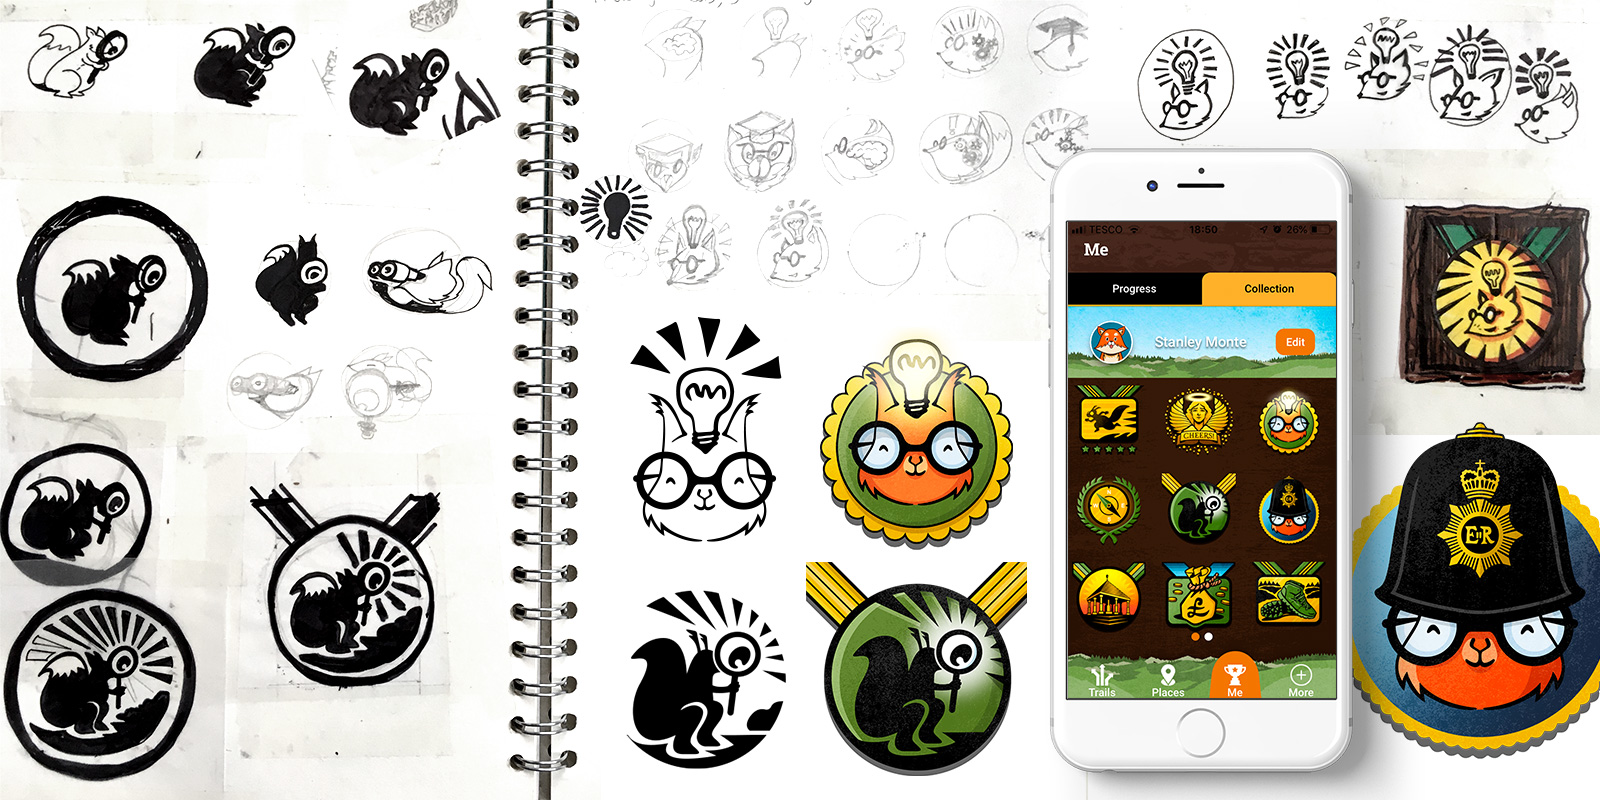 Sketches and designs of the rewards and badges users can collect whist using the Alston Explorer App